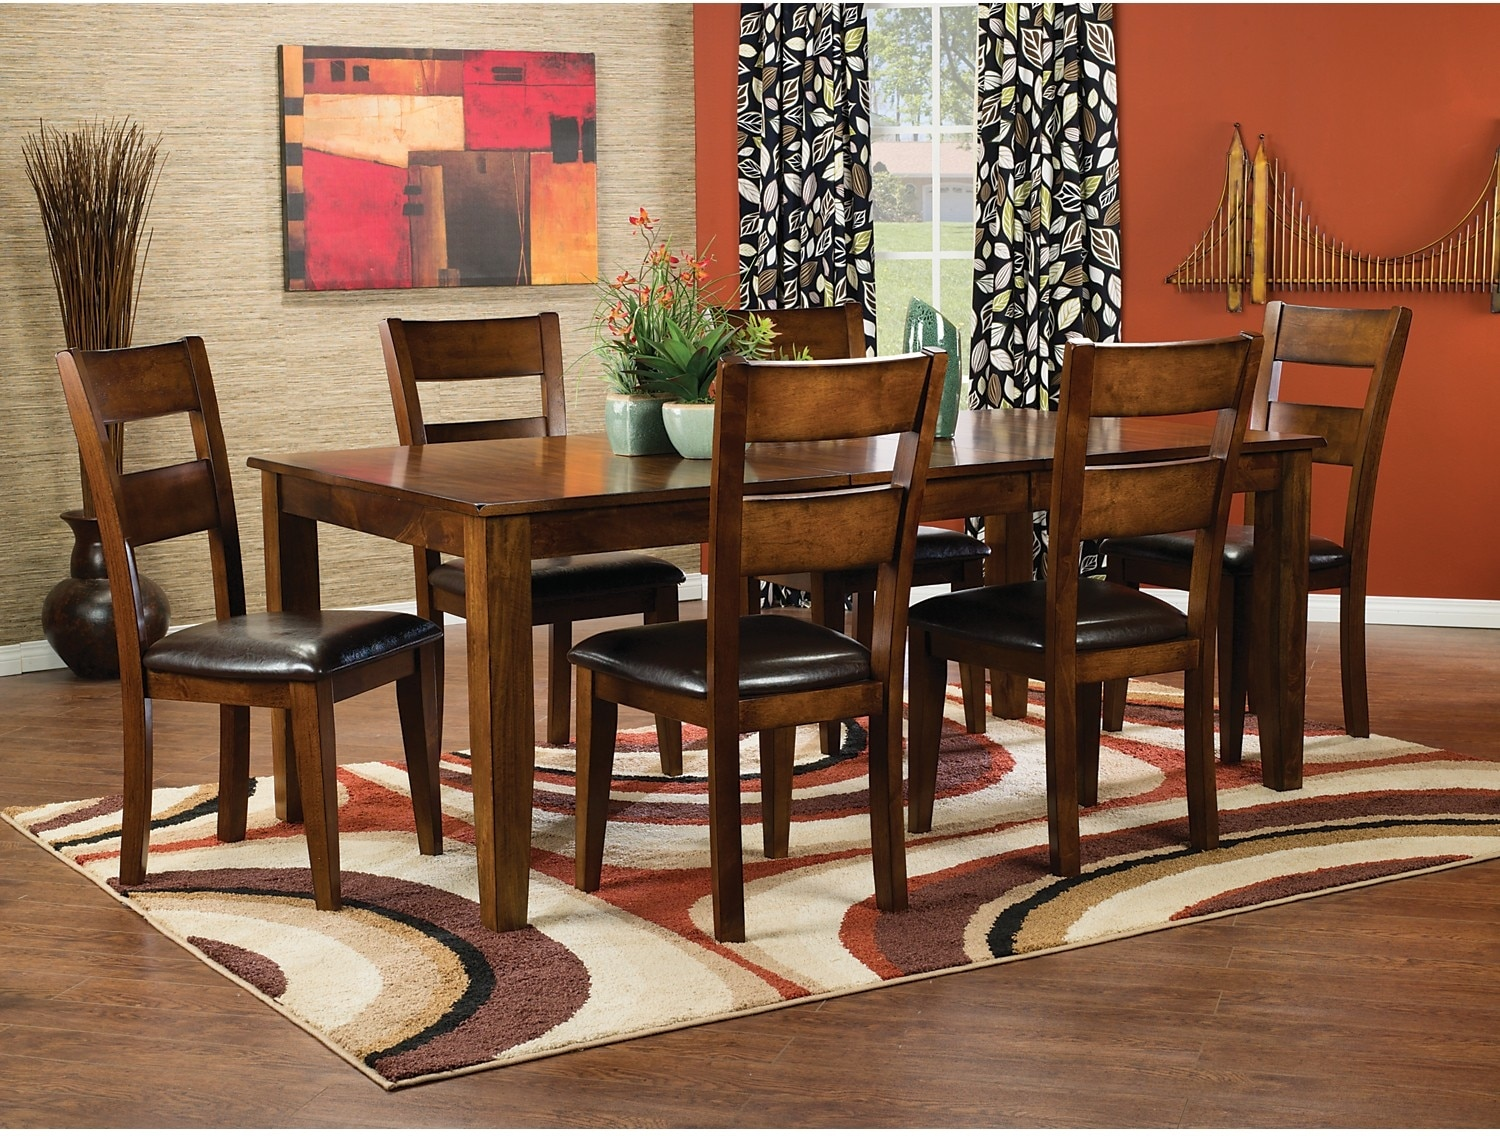 Dining Room Furniture - Dakota Light 8-Piece Dining Package